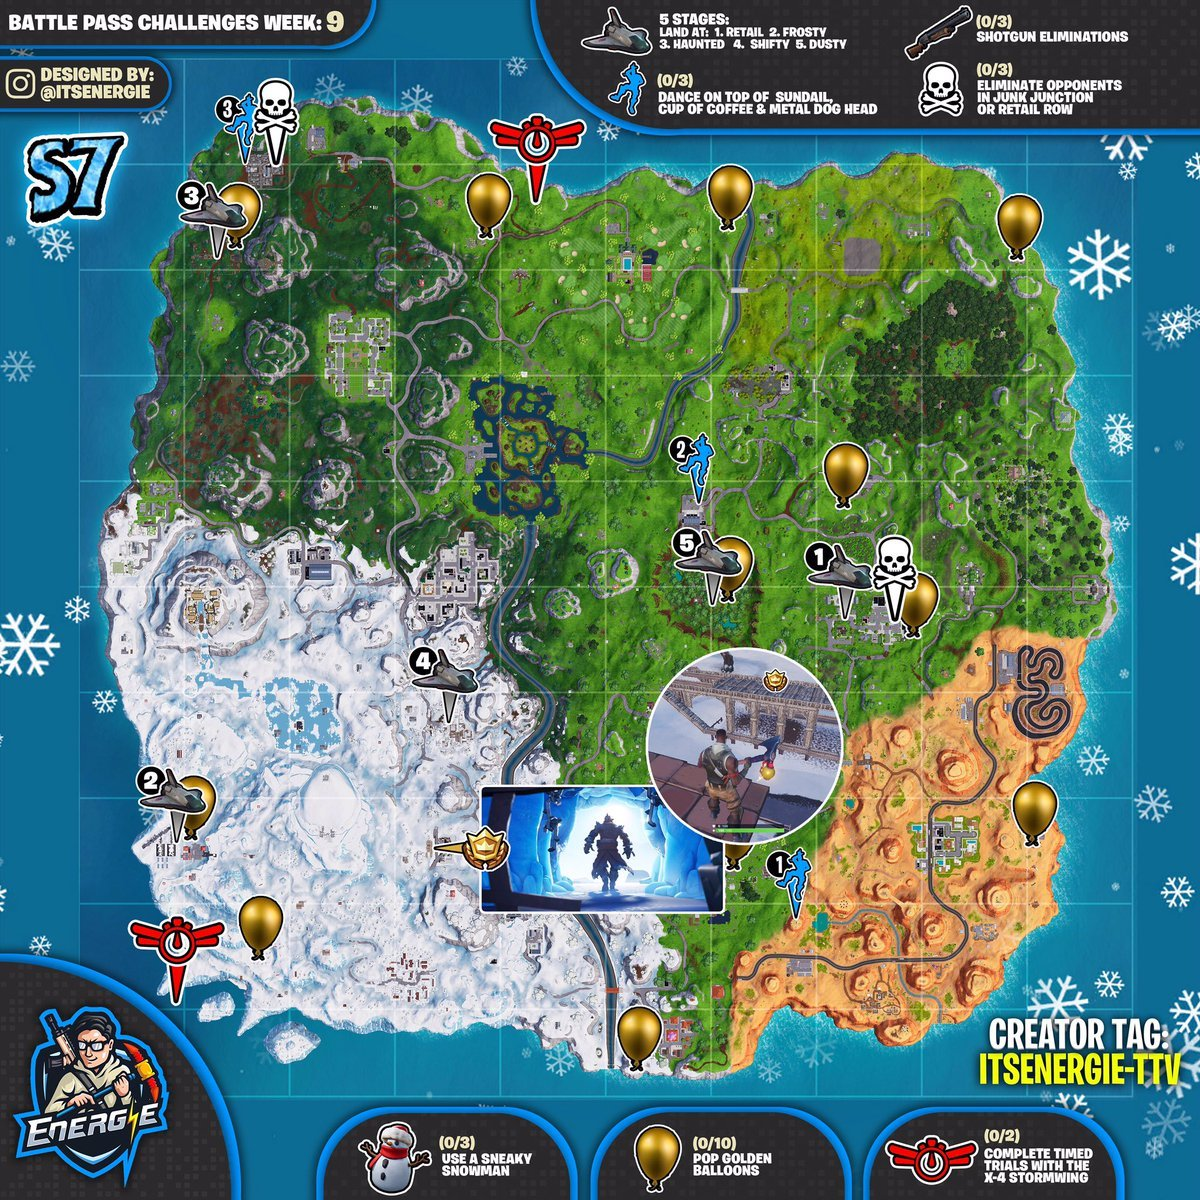 fortnite cheat sheet map for season 7 week 9 - fortnite week 9 and 10 loading screen season 8